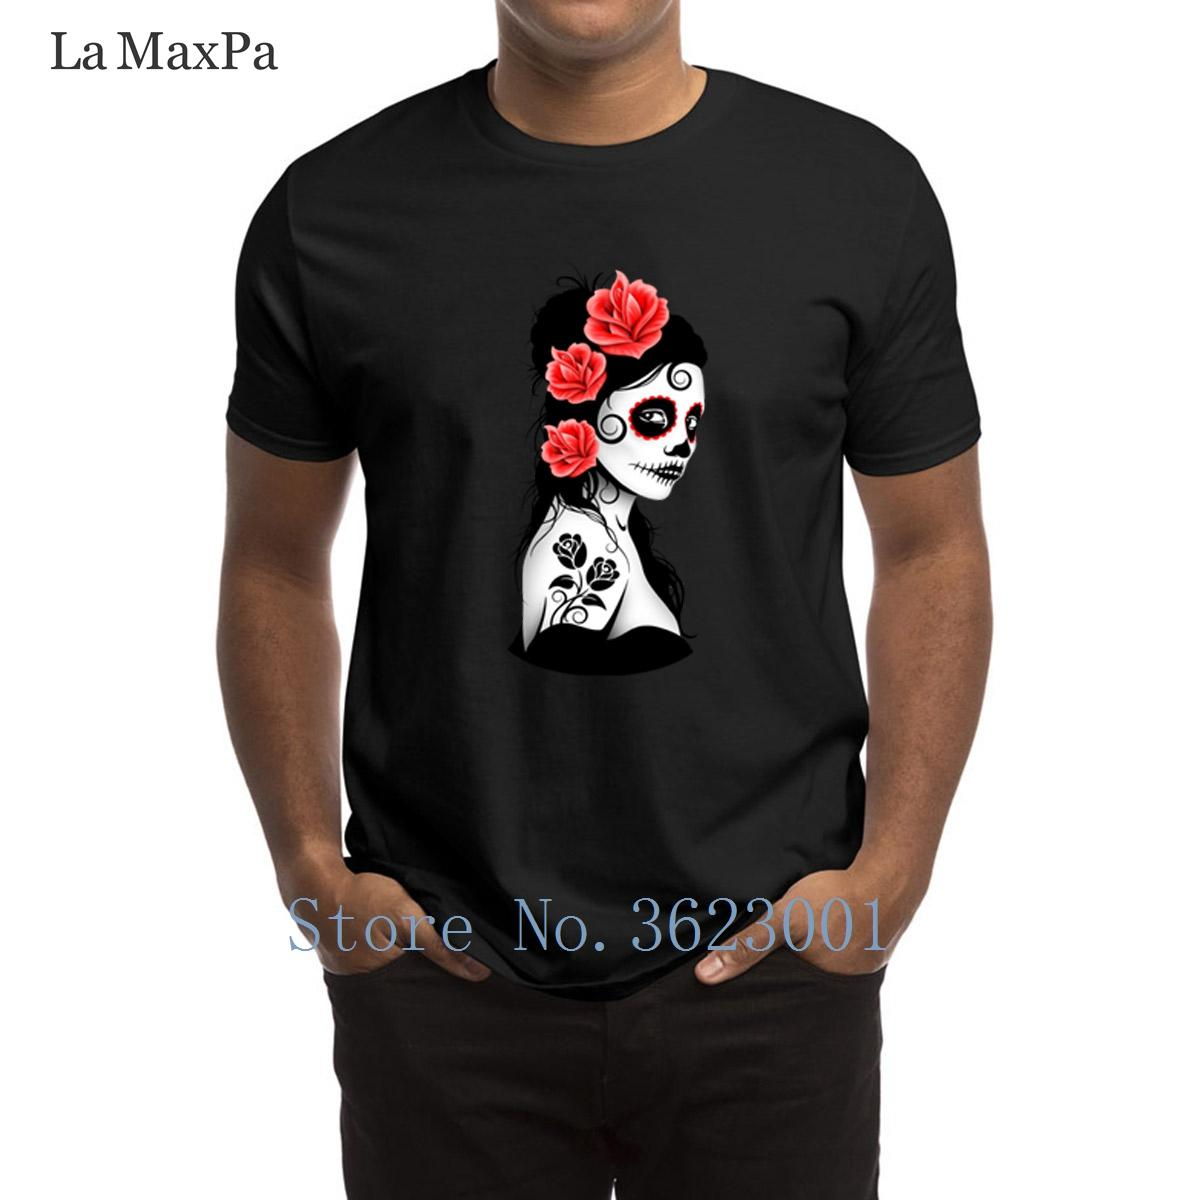 Designs Novelty Men T Shirt Red Day Of The Dead Sugar Skull Girl T-Shirt Humorous Summer Style Tshirt New 100% Cotton Tee Shirt